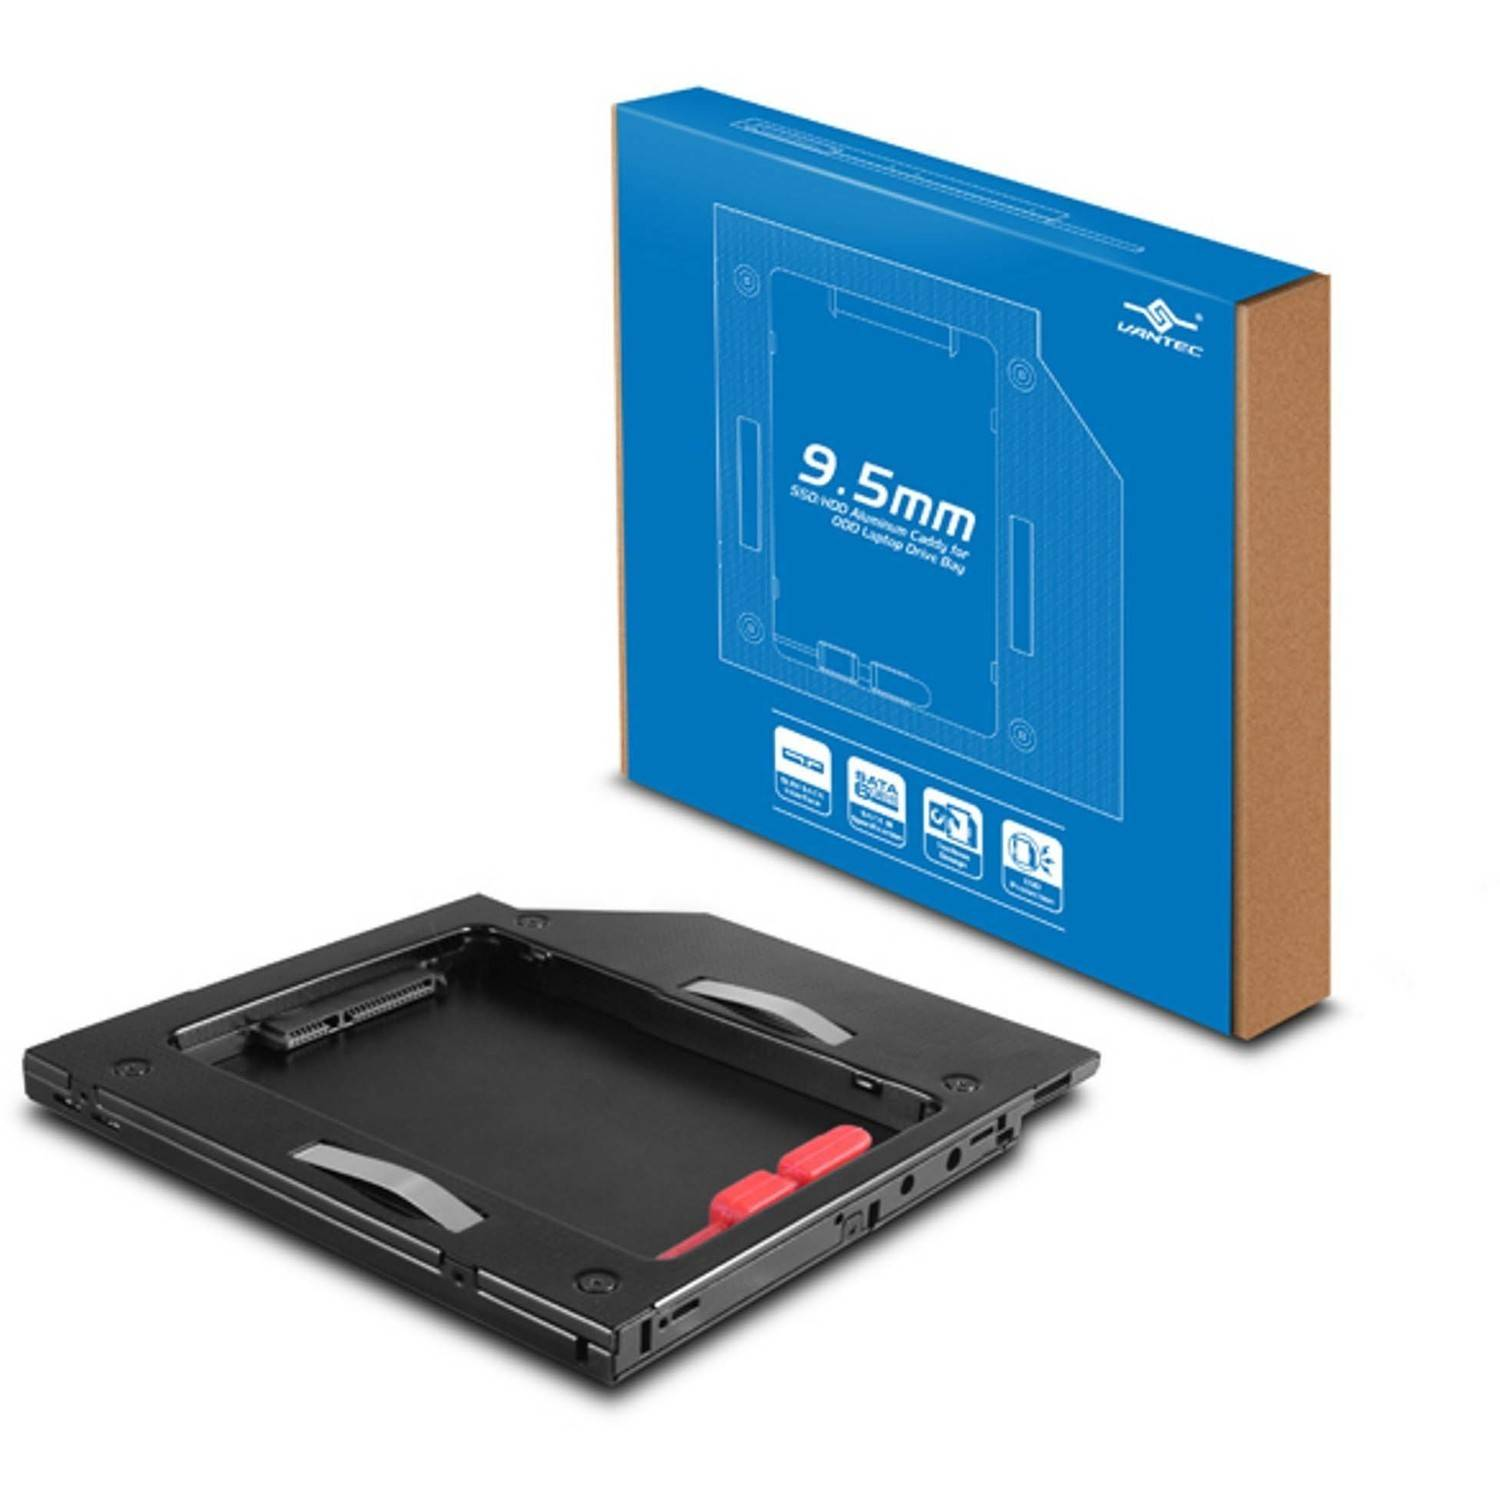 Vantec MRK-HC95A-BK SSD or HDD Aluminum Caddy for 9.5mm ODD Laptop Drive Bay, Black